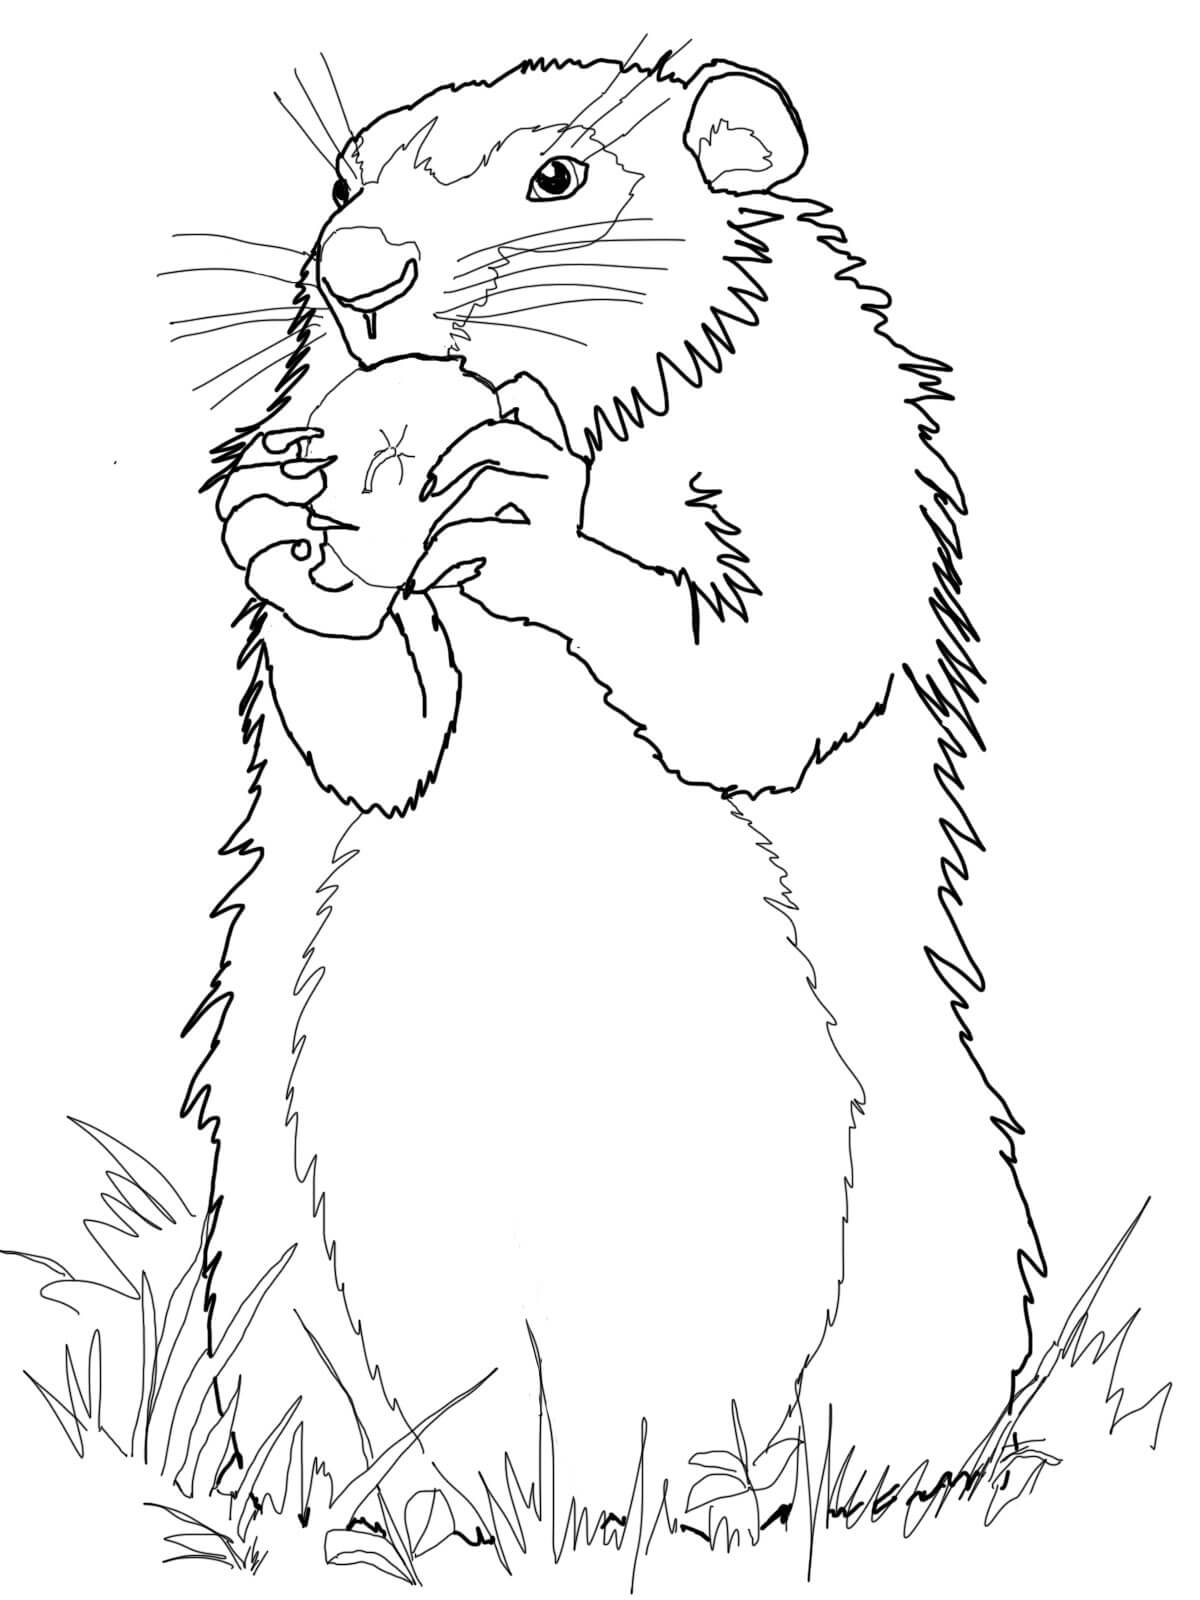 - Groundhog Coloring Pages - Best Coloring Pages For Kids